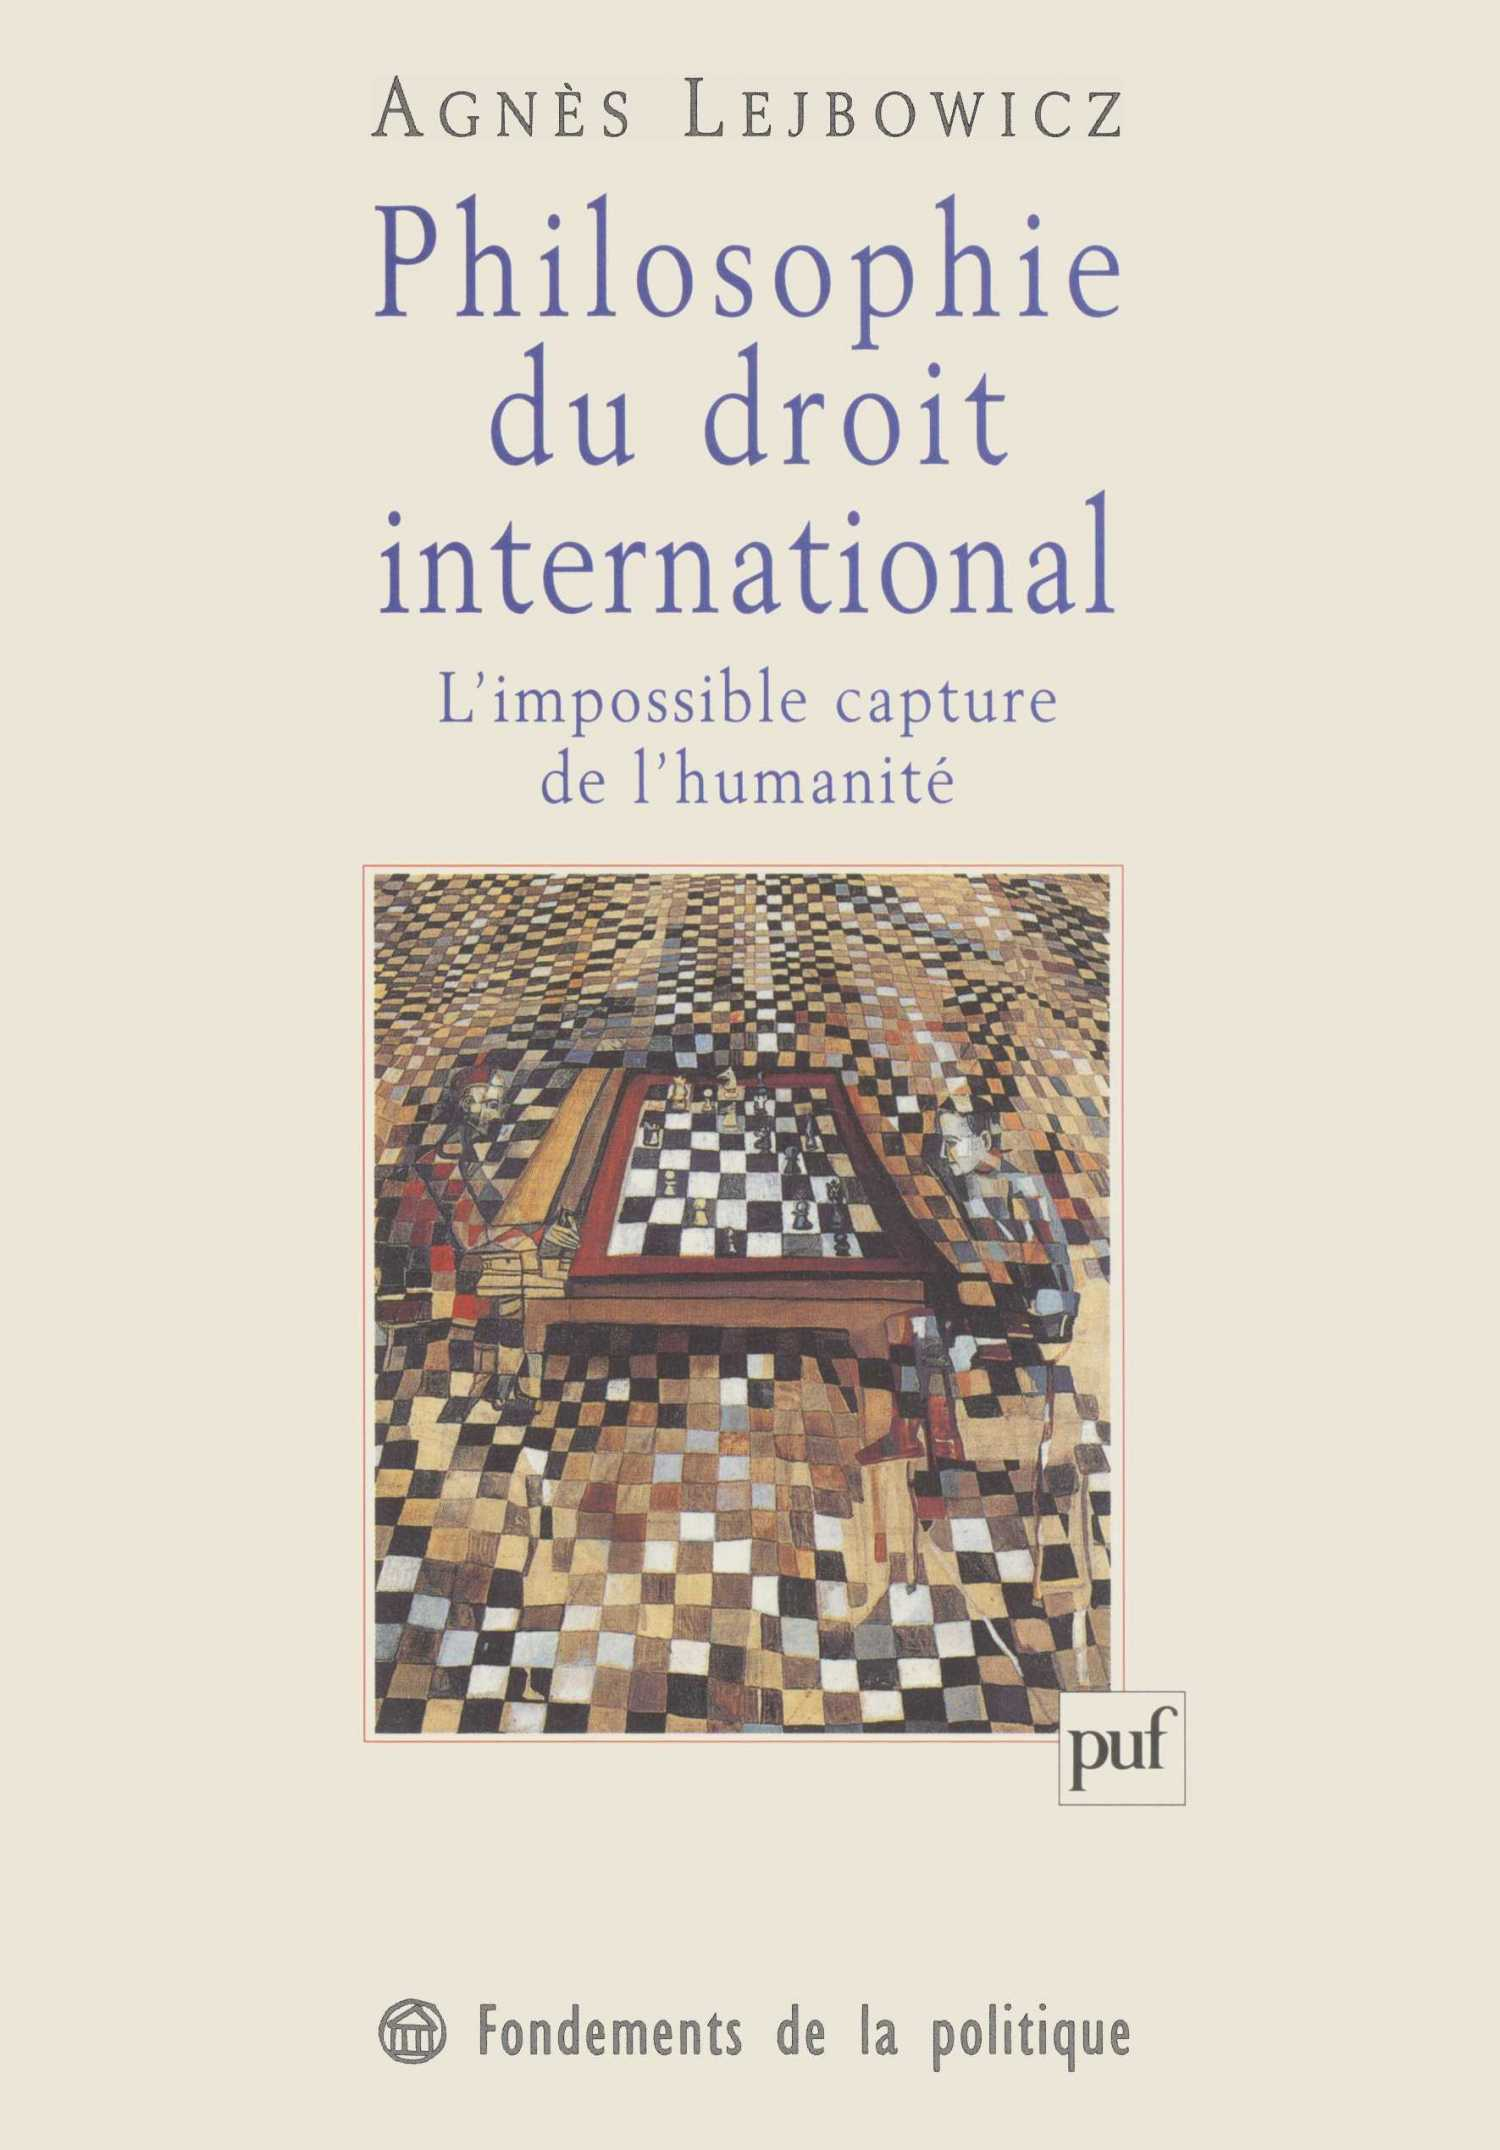 Philosophie du droit international De Agnès Lejbowicz - Presses Universitaires de France